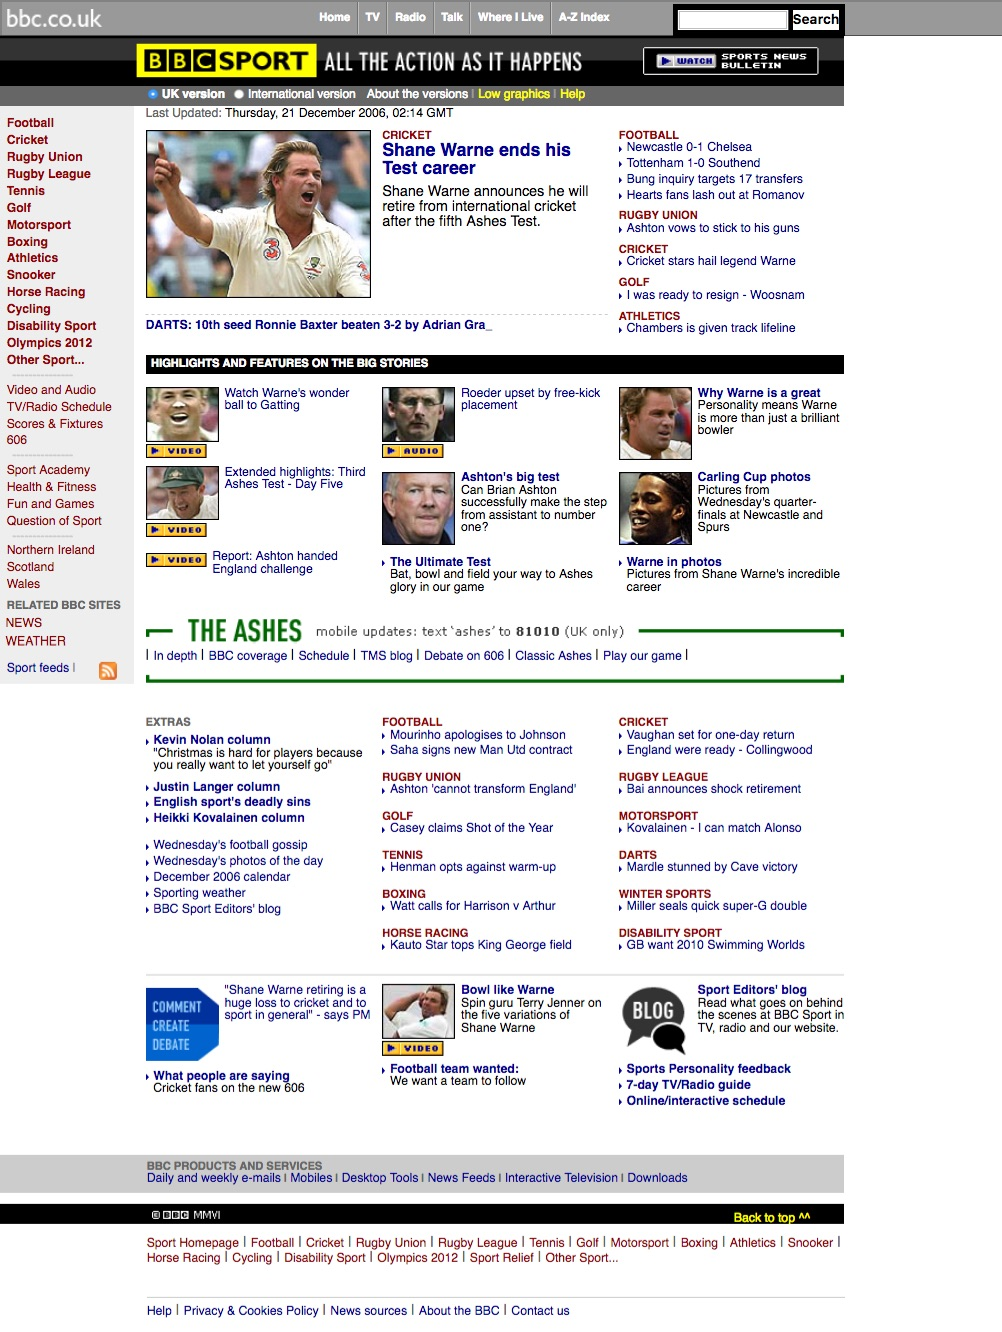 BBC.co.uk sports homepage (2006)